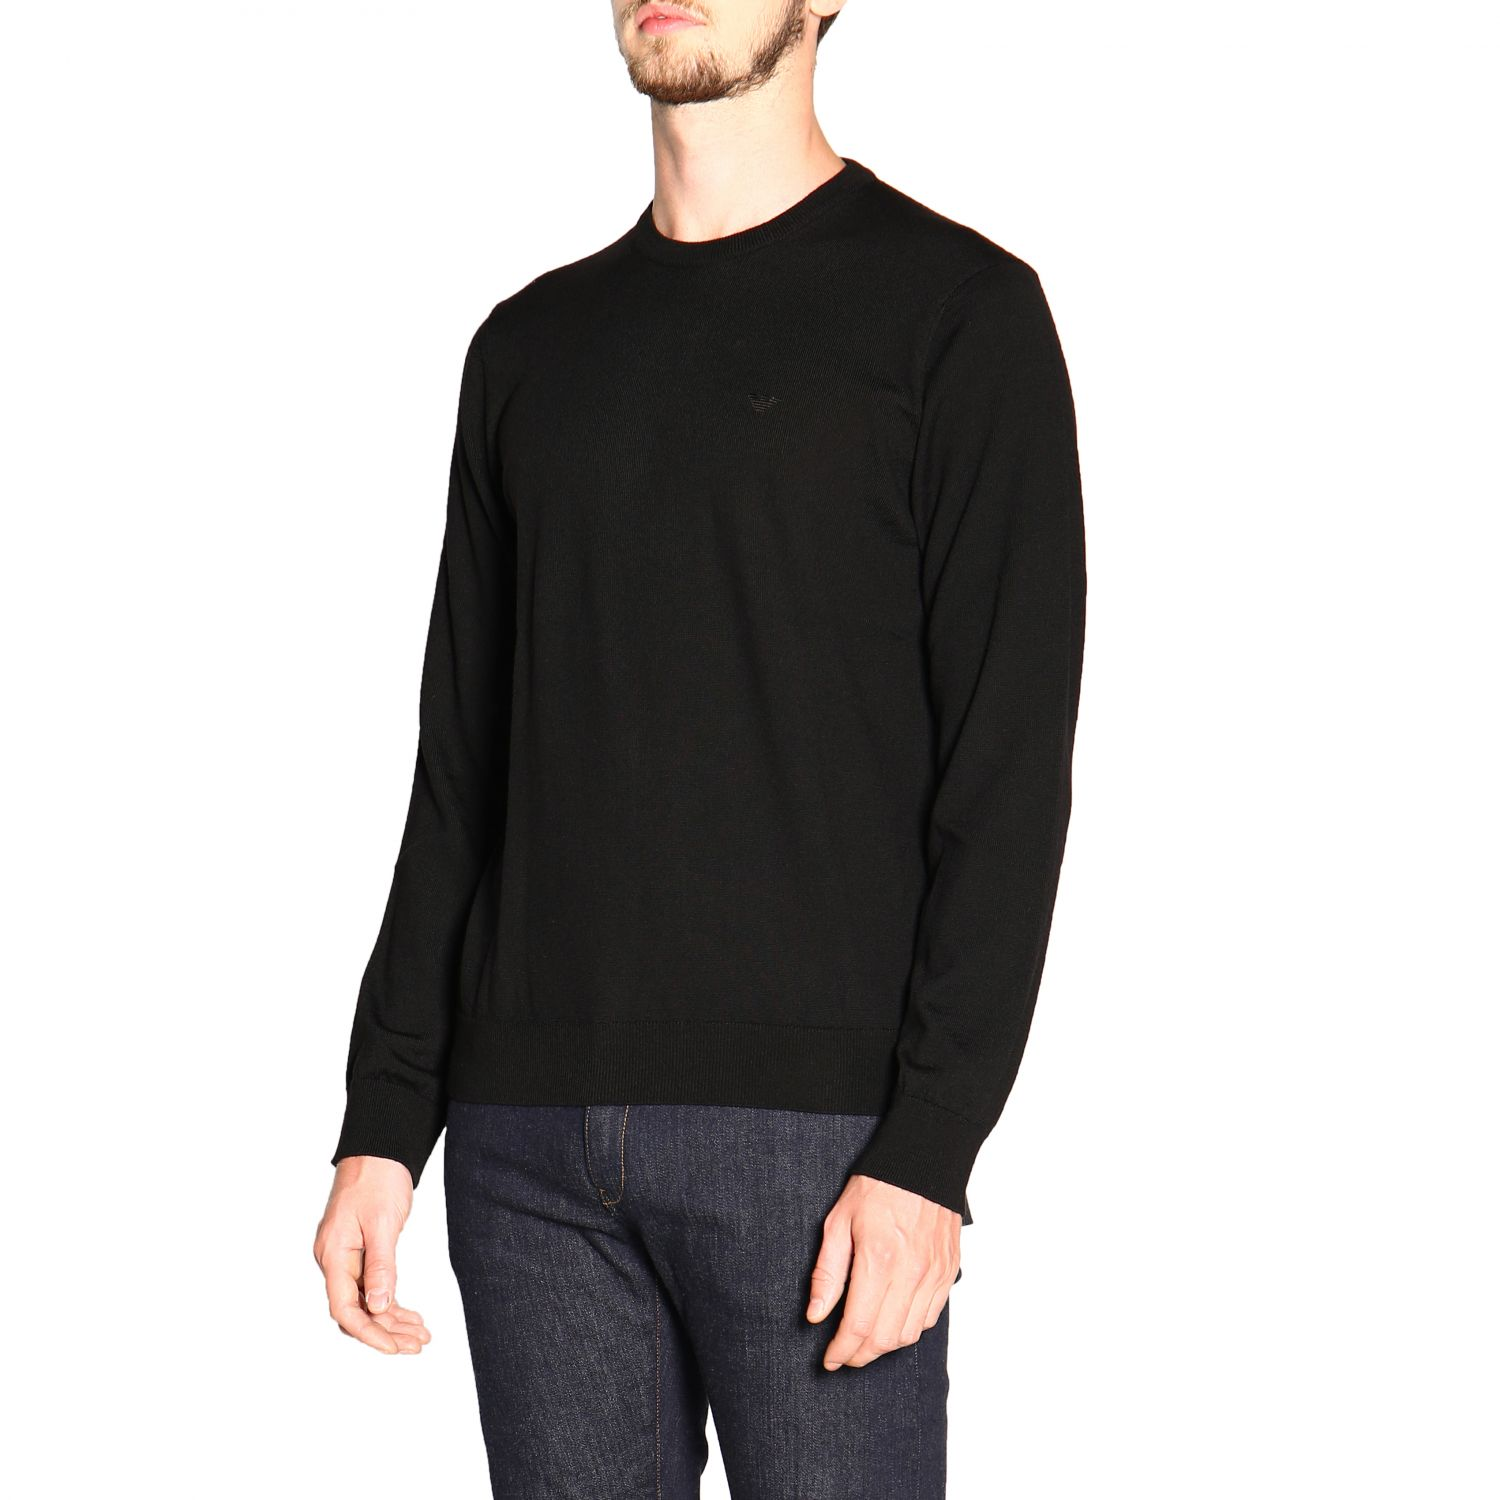 Emporio Armani long-sleeved crew neck sweater in wool black 4